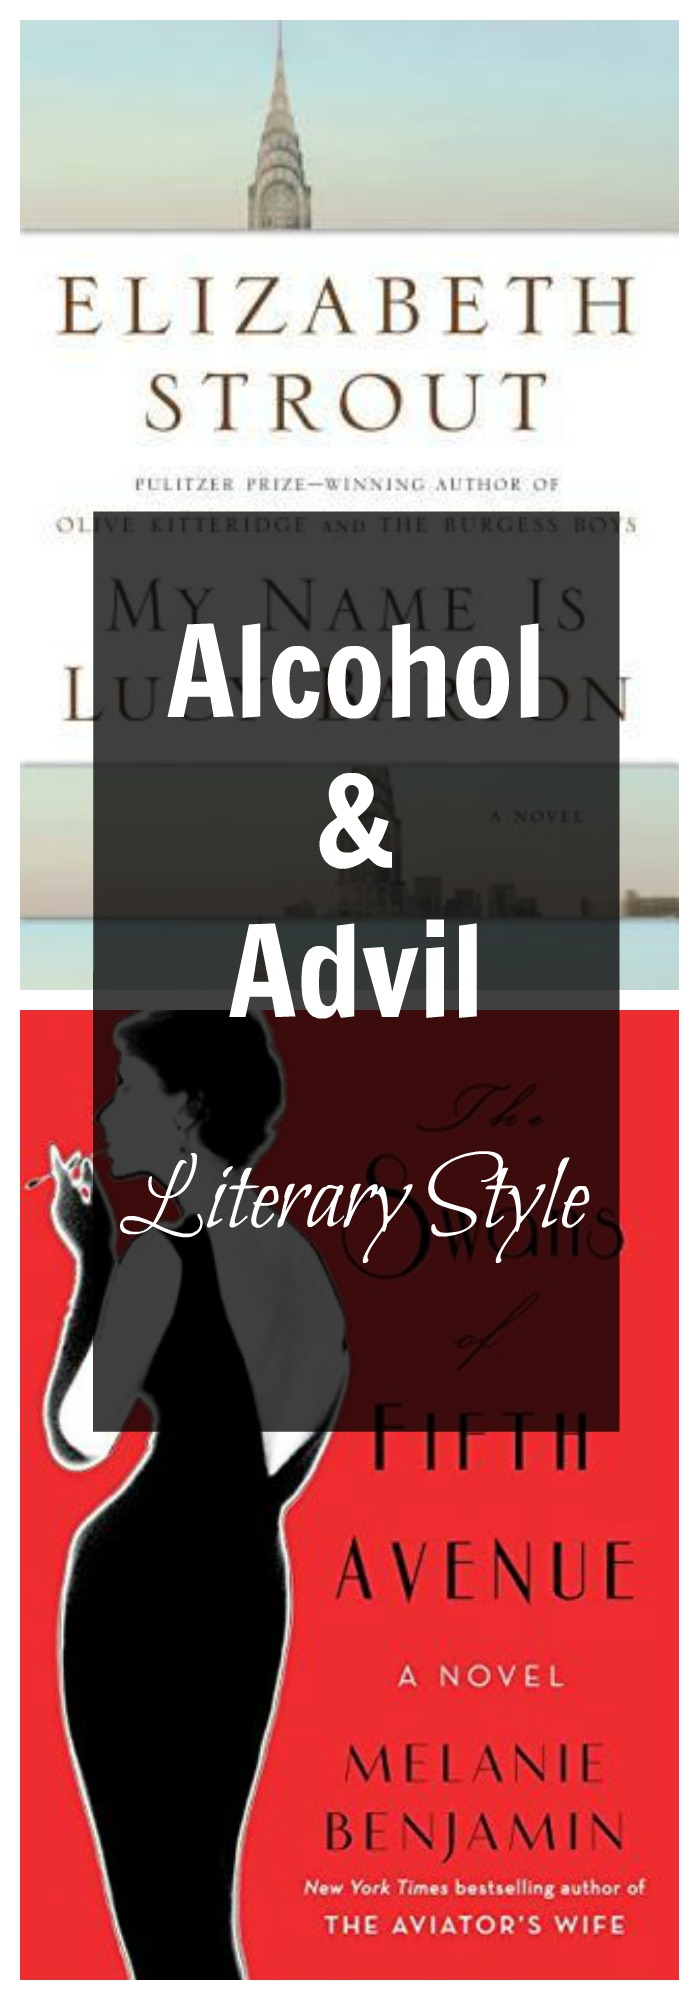 Alcohol & Advil is a feature where I pair a book likely to cause a